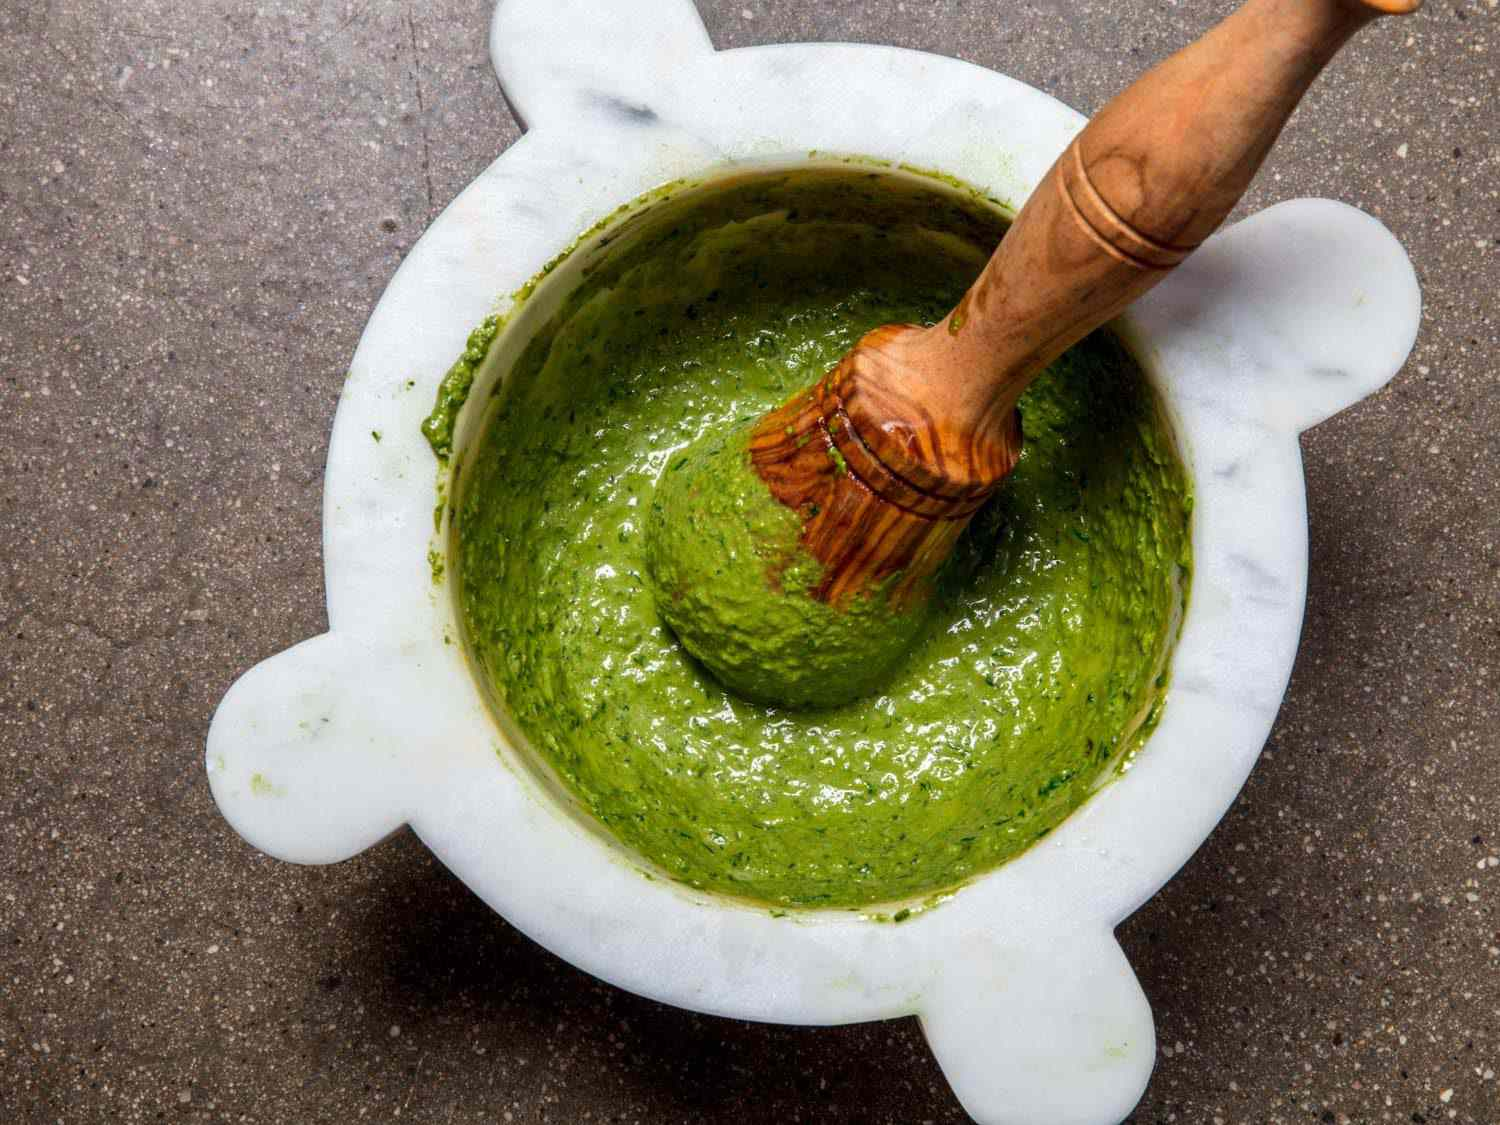 Finished pesto in a marble mortar and pestle